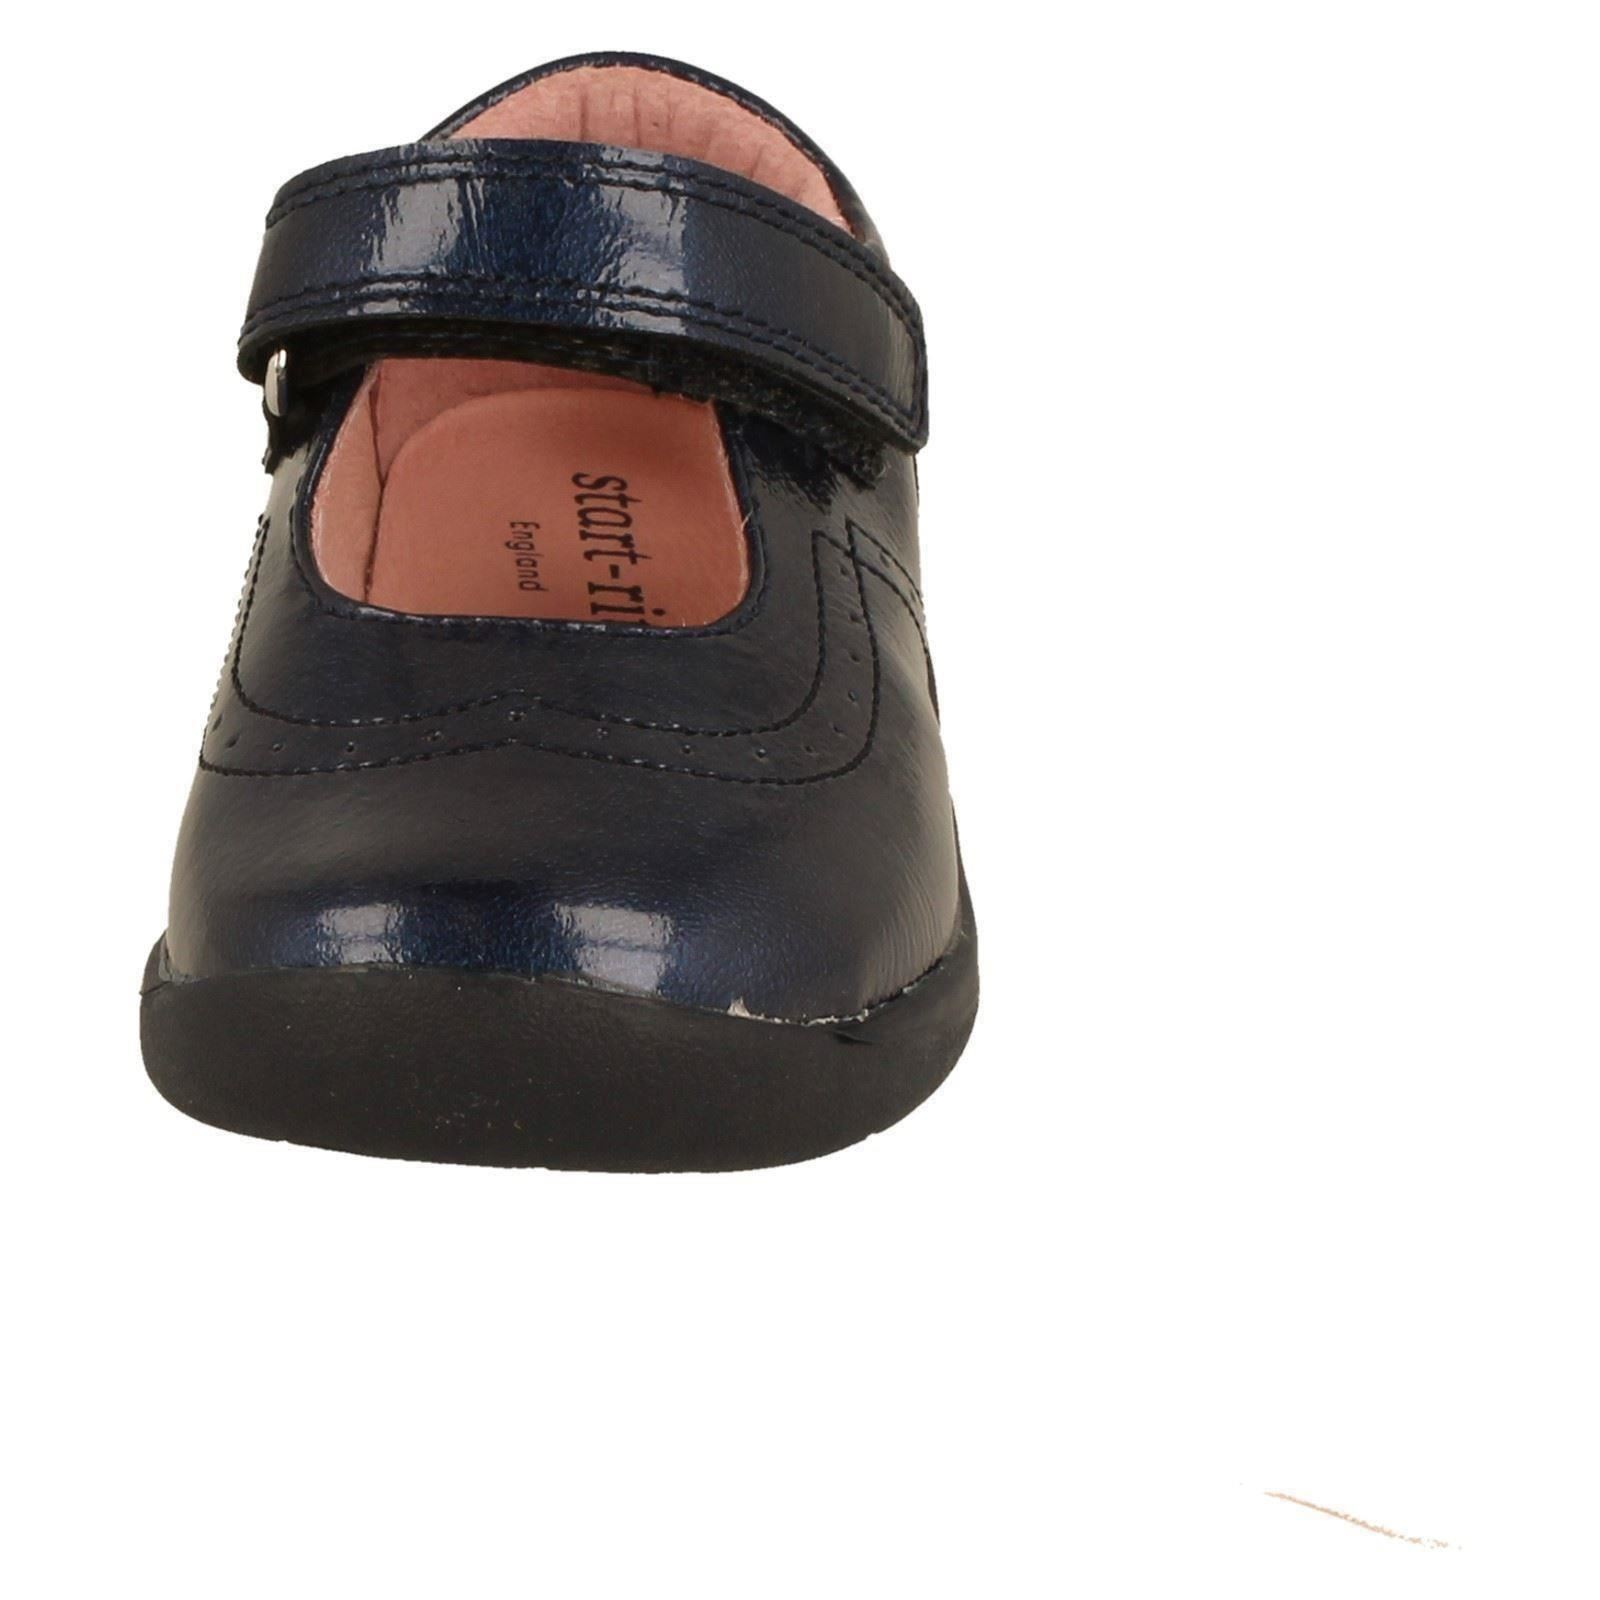 Chicas START Rite Etiqueta de zapatos estilo Mary Jane SRSS Alice-W